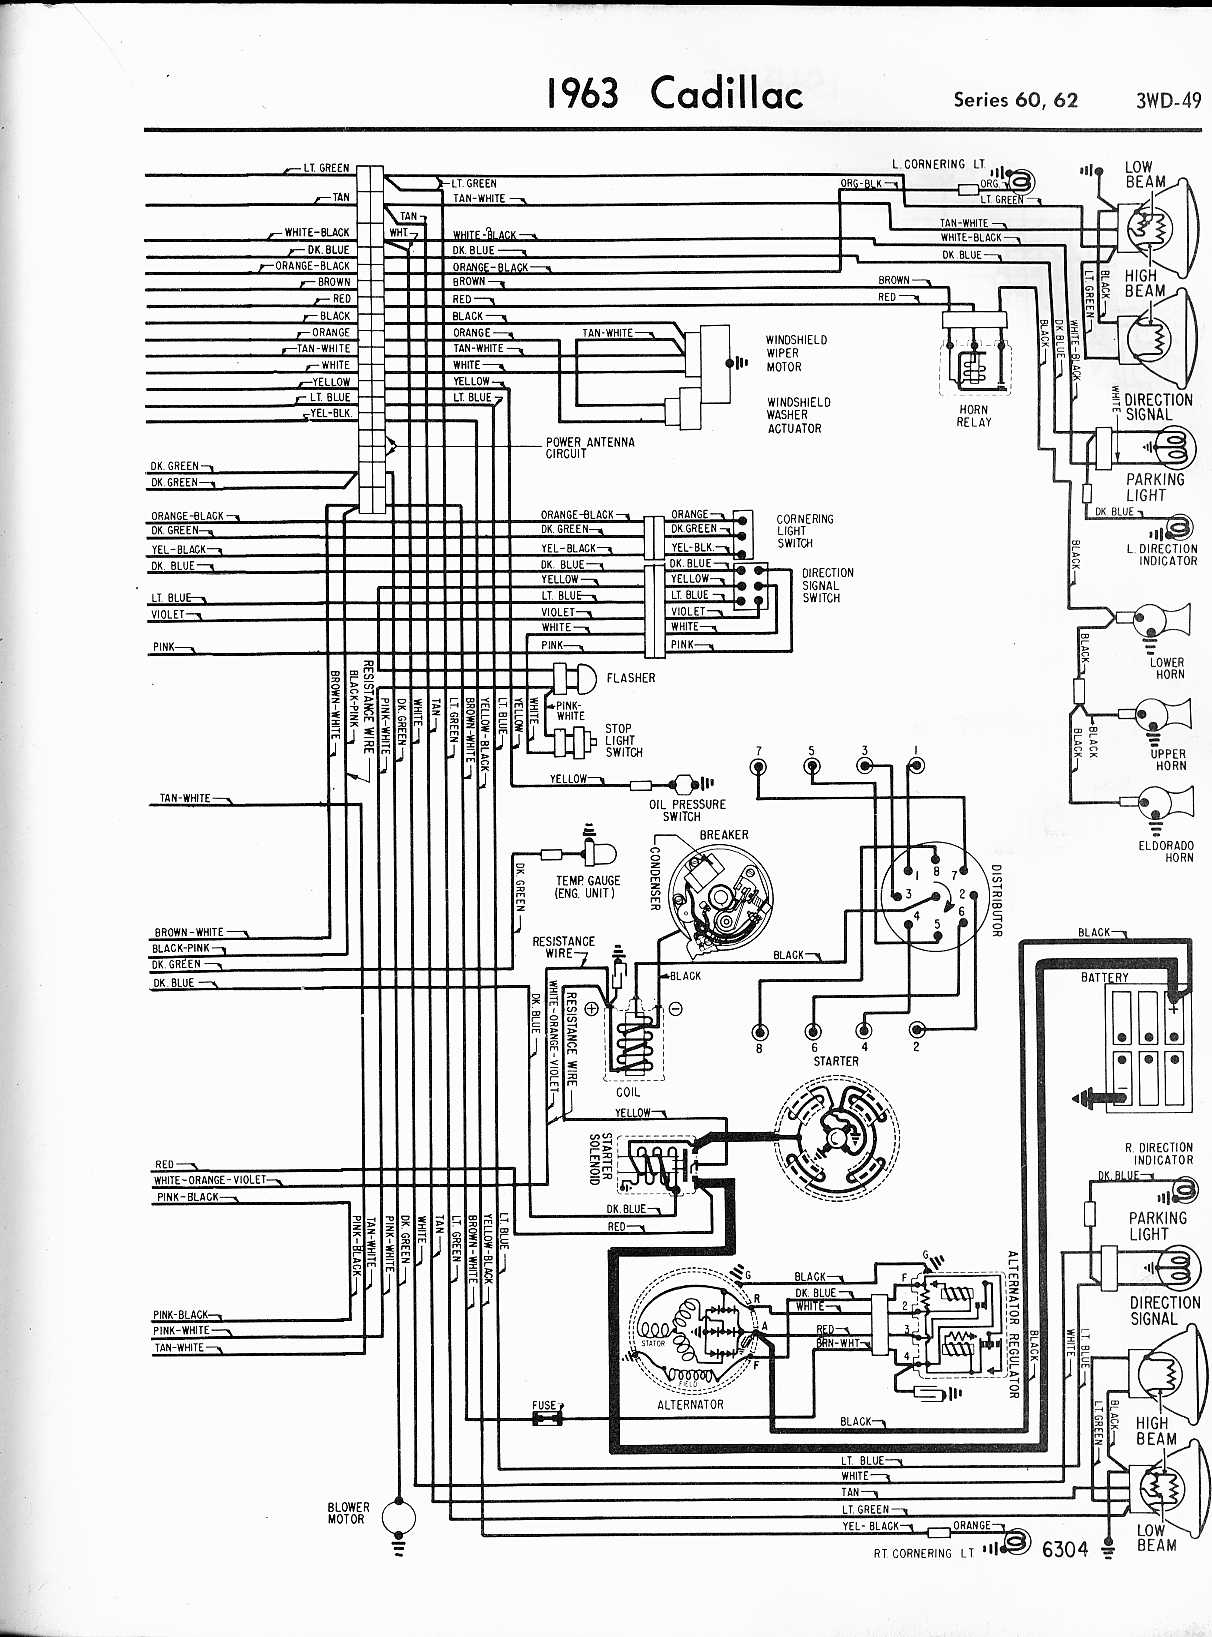 cadillac 1963 windows wiring diagram all about diagrams cadillac wiring diagrams: 1957-1965